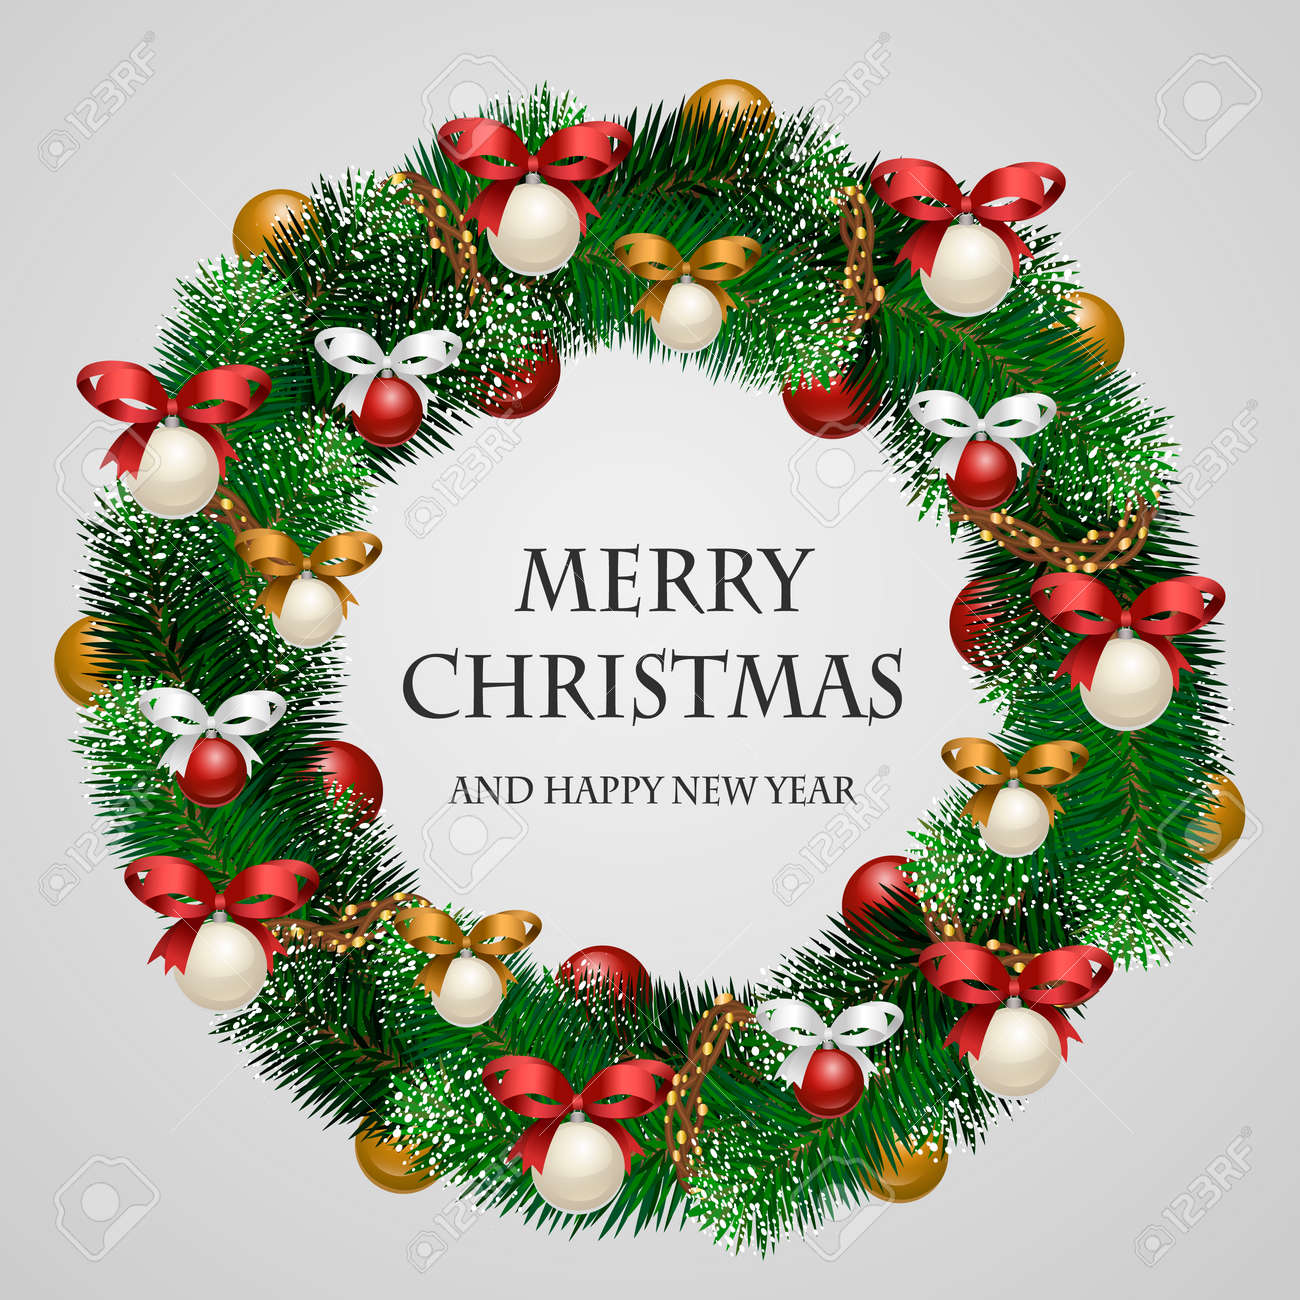 Christmas wreath. Beautiful evergreen wreath of Xmas tree branches with garland, toys, ribbons illustration. Merry Christmas and Happy New Year greetings. Home decoration for winter celebration - 65879940